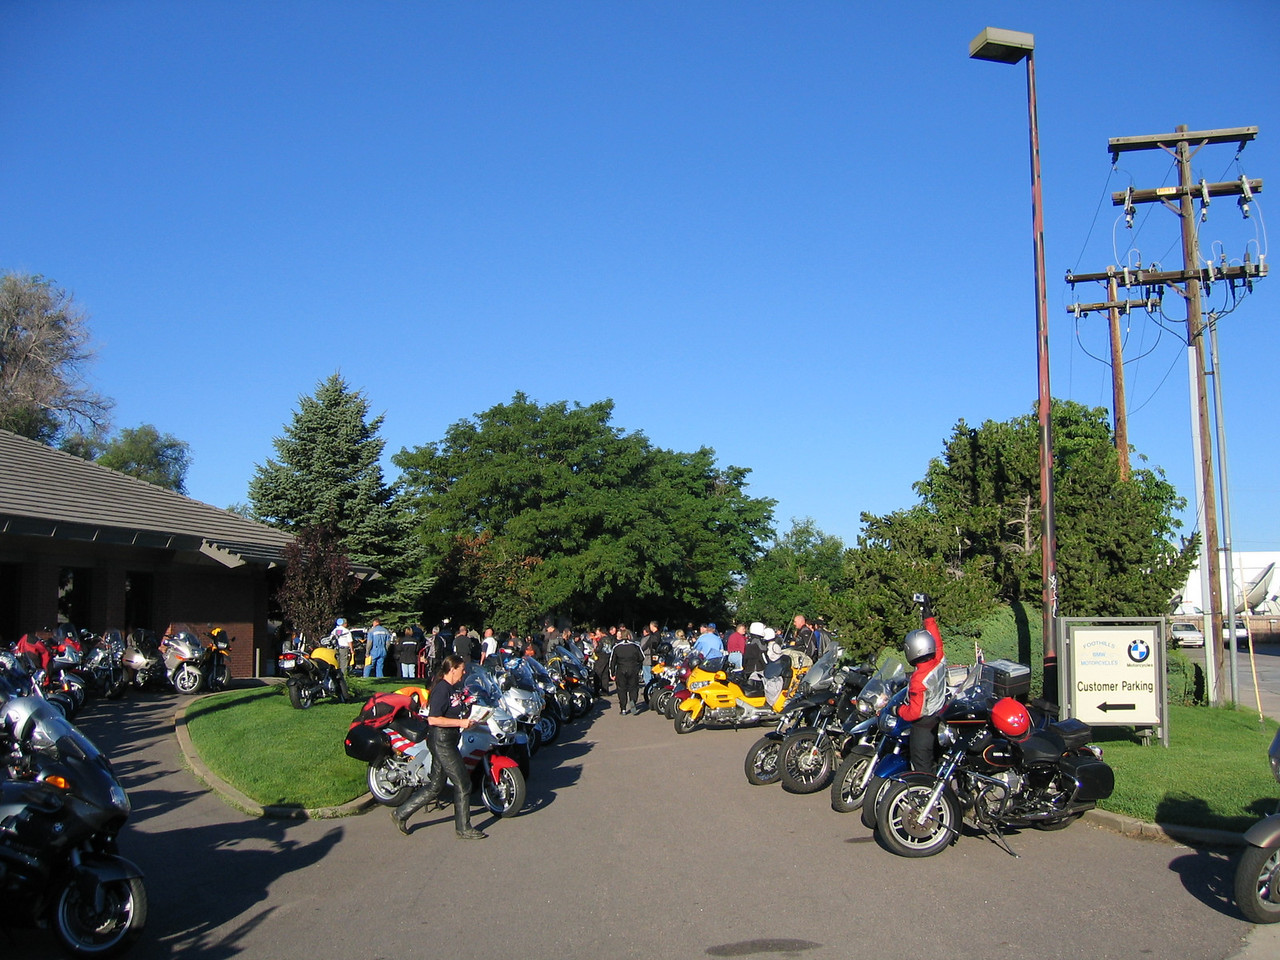 Saturday morning, August 6th, and the Colorado BMW Motorcycle Club's annual 100,000 Foot Ride starts at Foothills BMW Motorcycles, the key sponsor of the event.  Over 300 riders showed up to make the ride, including folks from Oregon and other far away states.